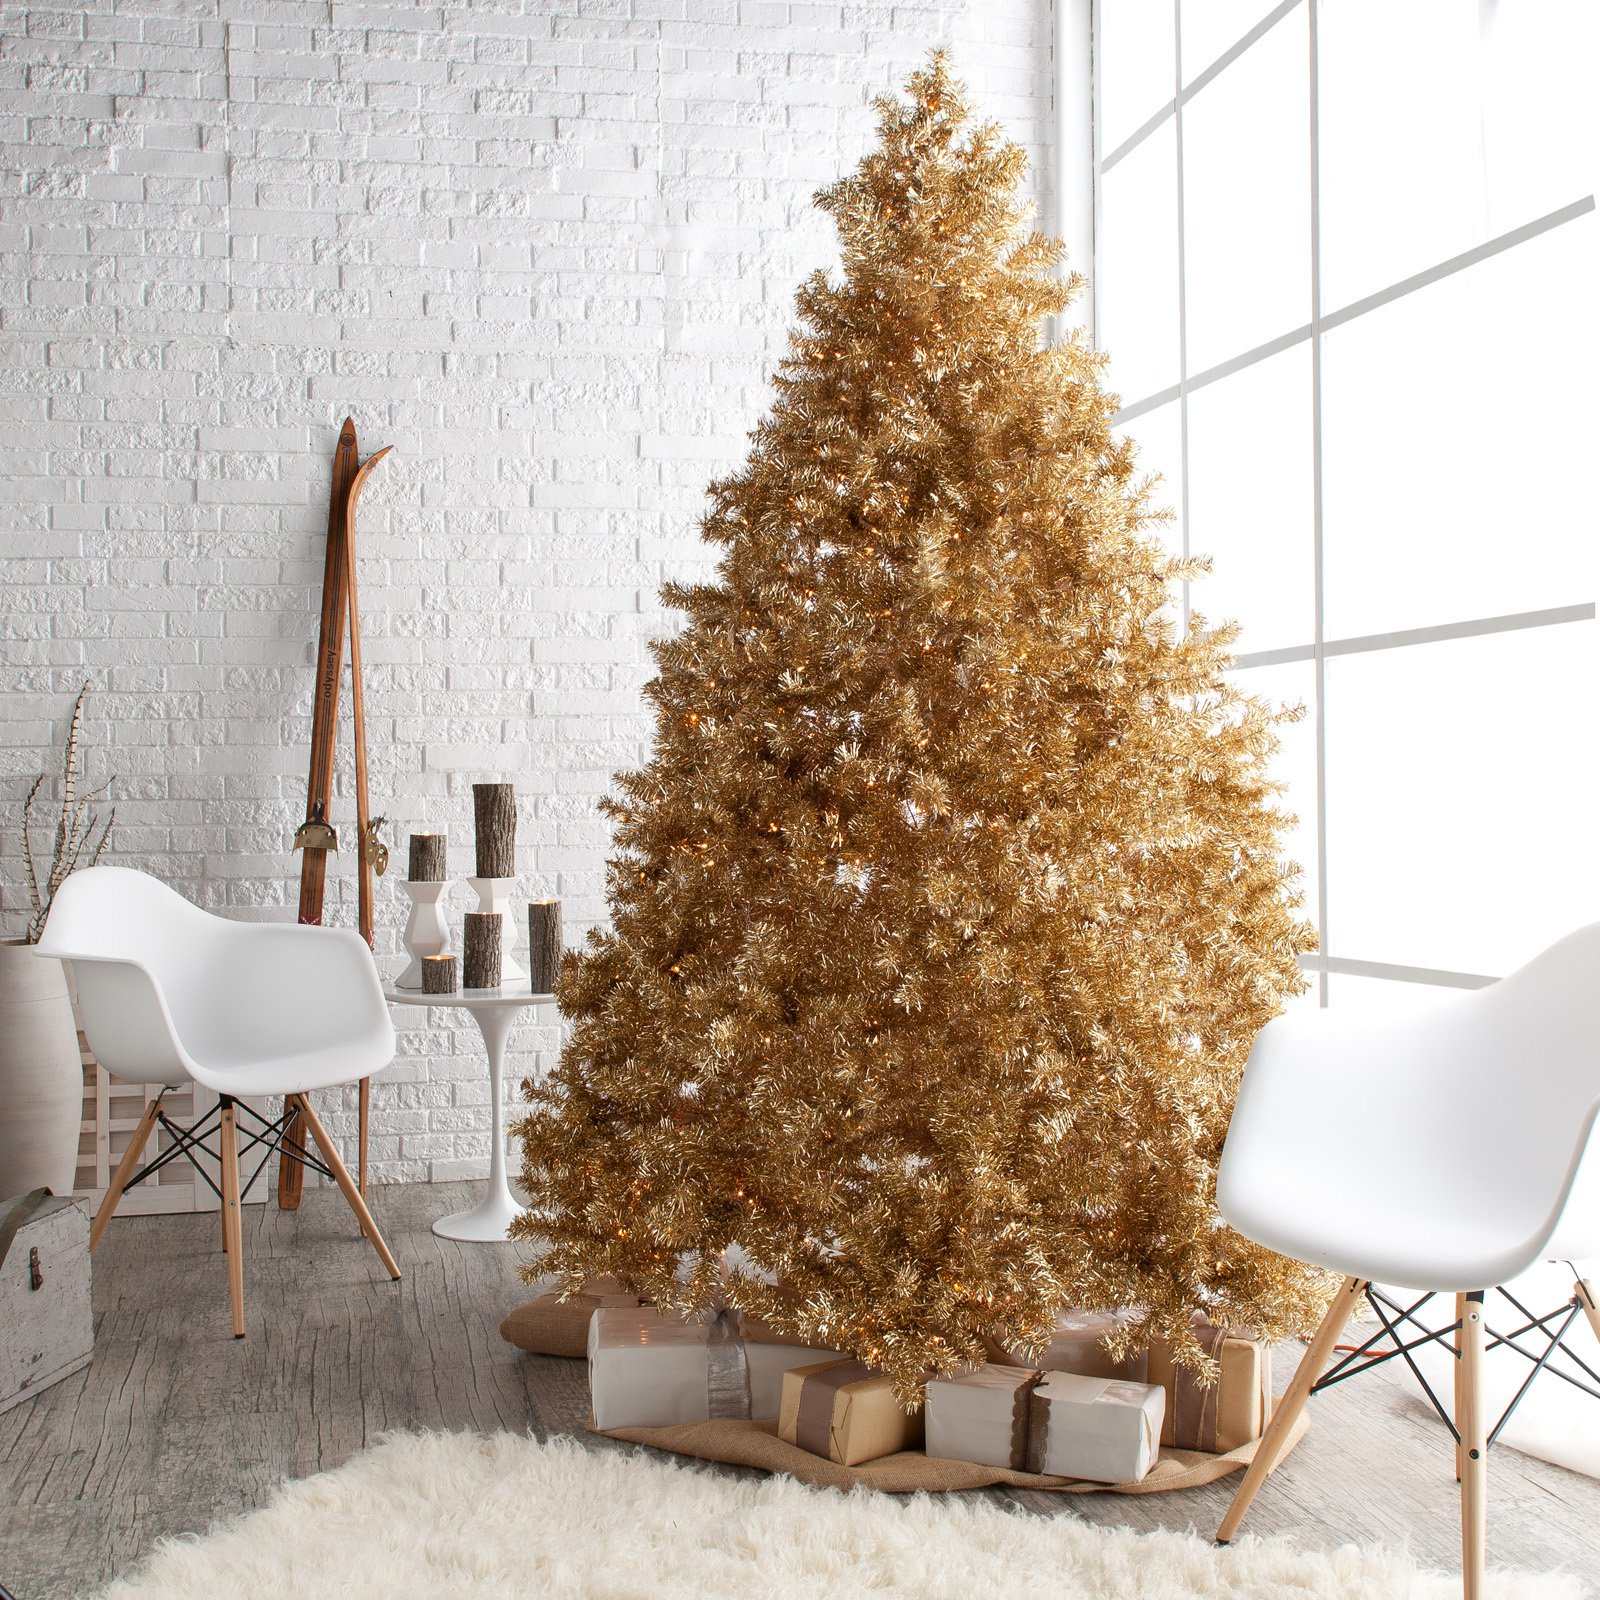 29 golden wishes - Gold Christmas Tree Decorating Ideas